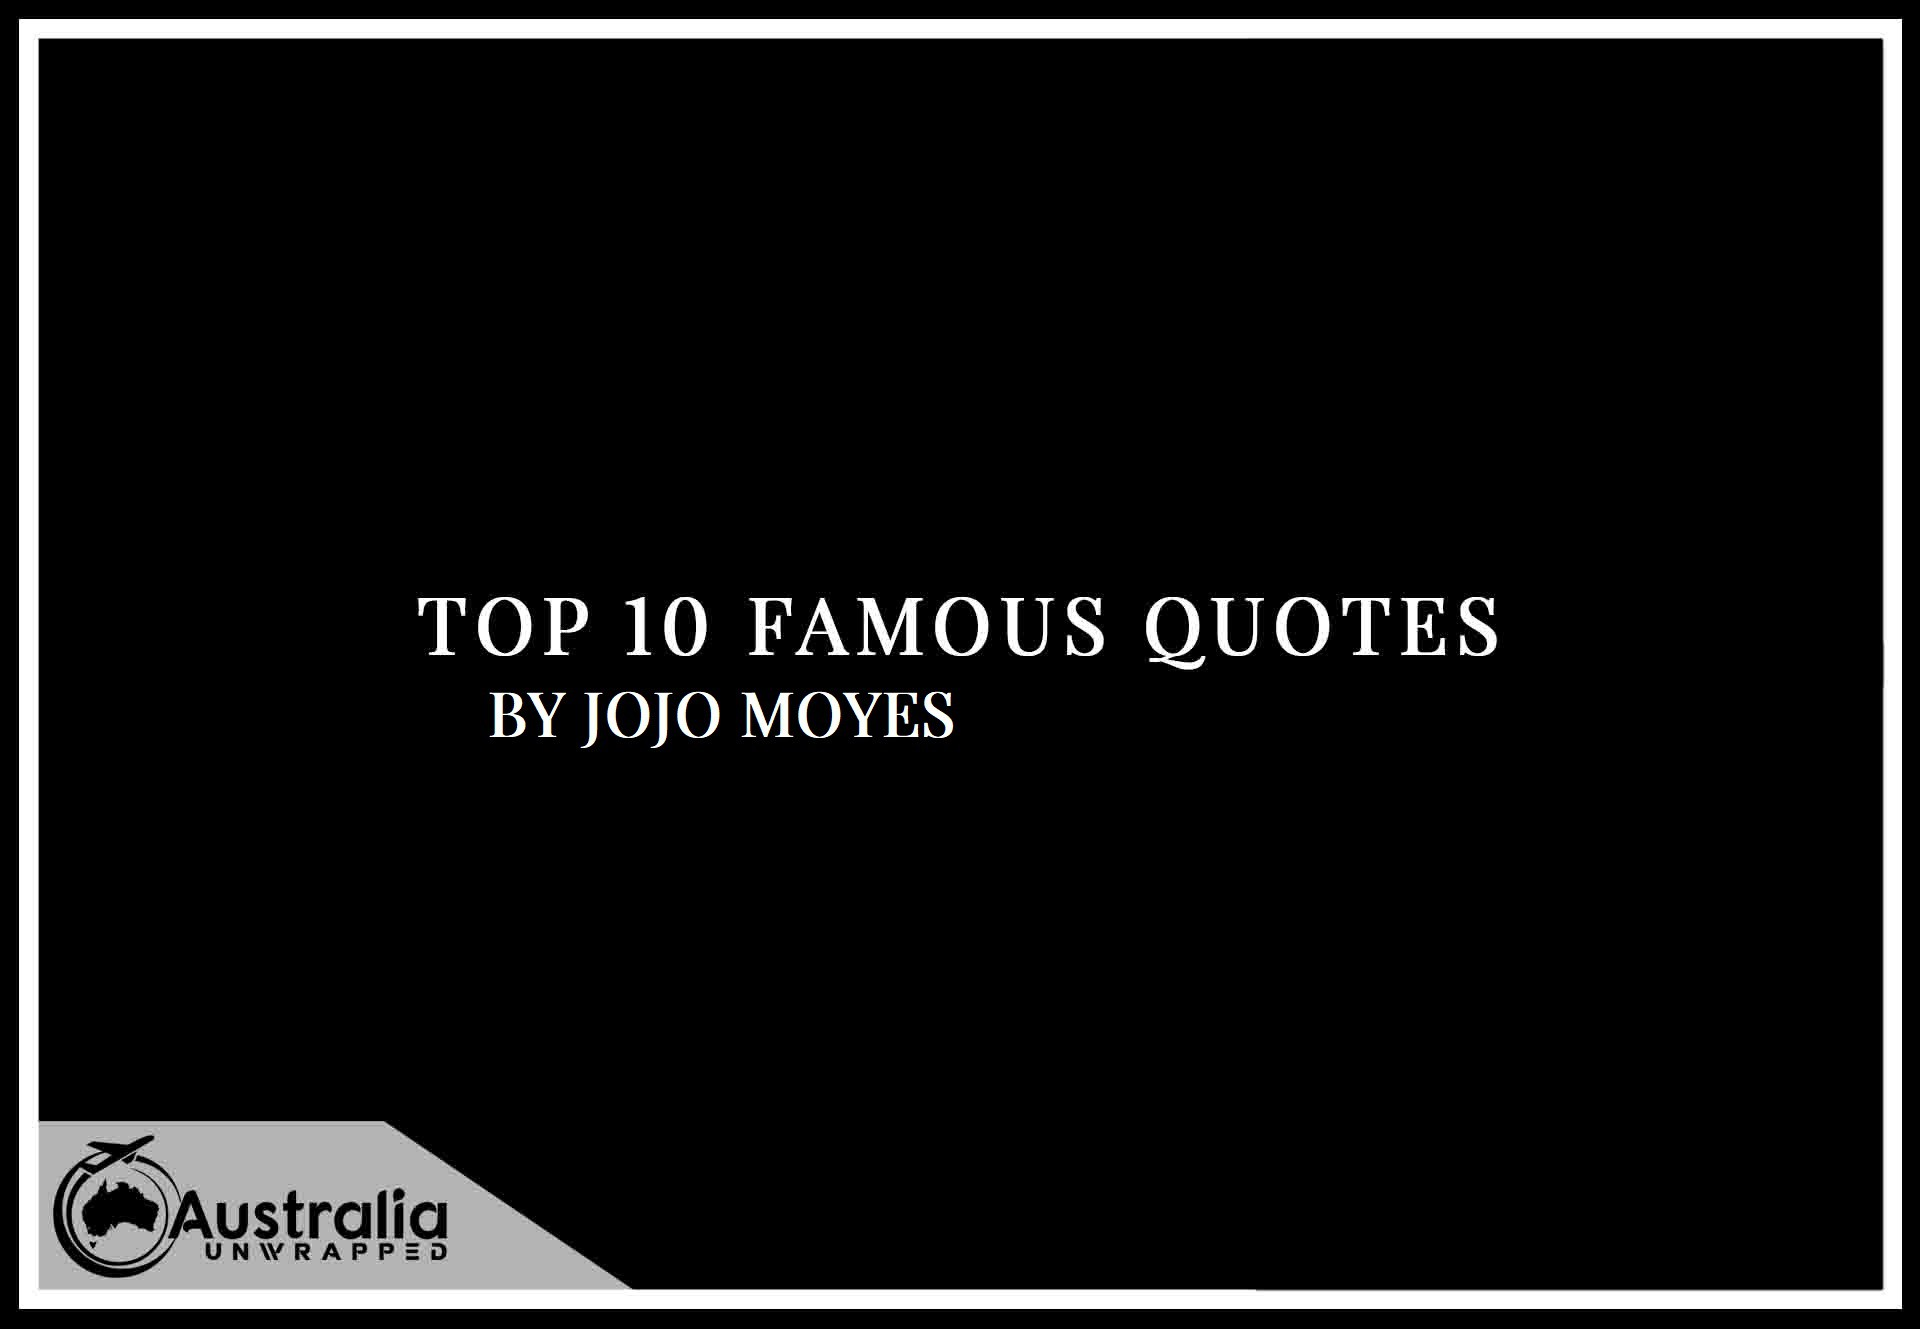 Top 10 Famous Quotes by Author Jojo Moyes